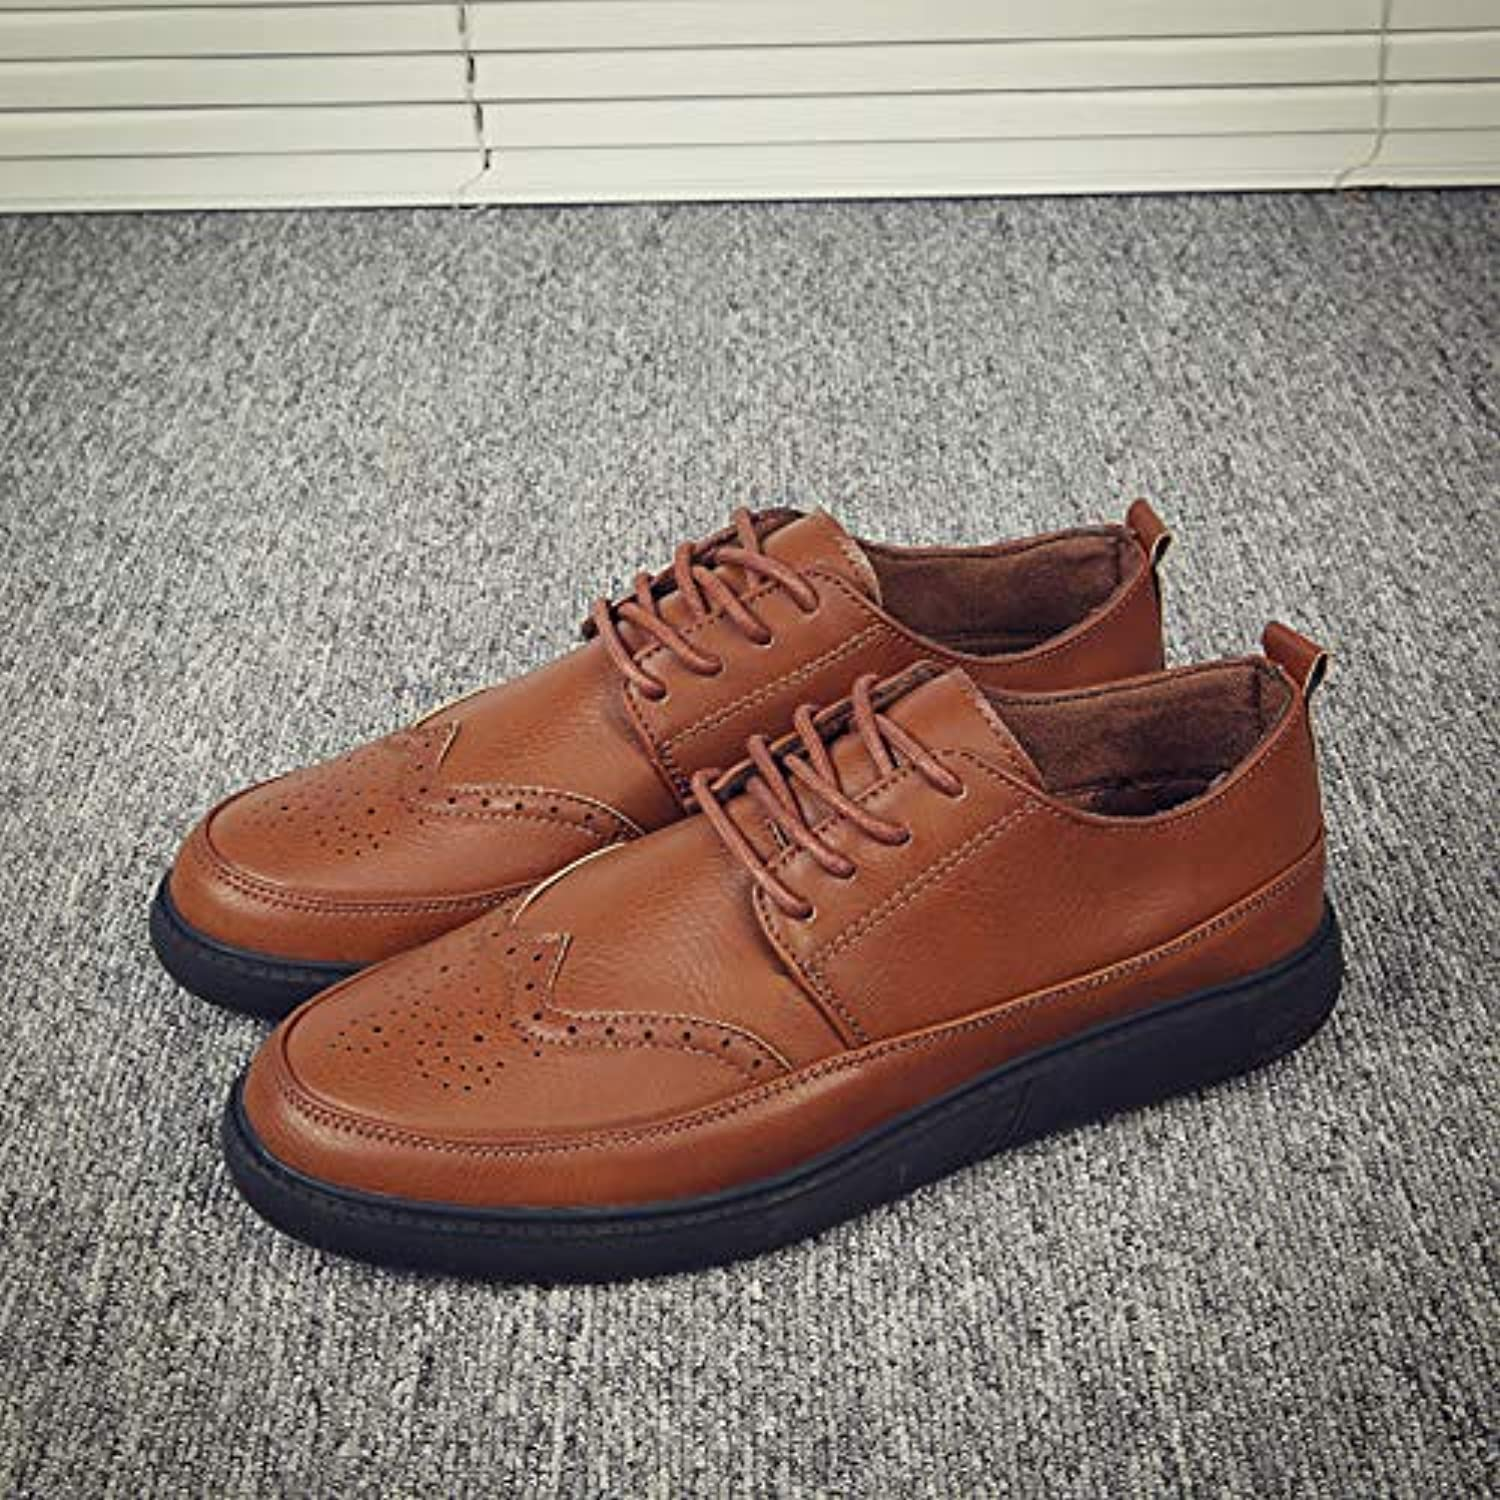 LOVDRAM Men'S Leather shoes Spring Trend Brock Men'S shoes Fashion New Casual shoes Men